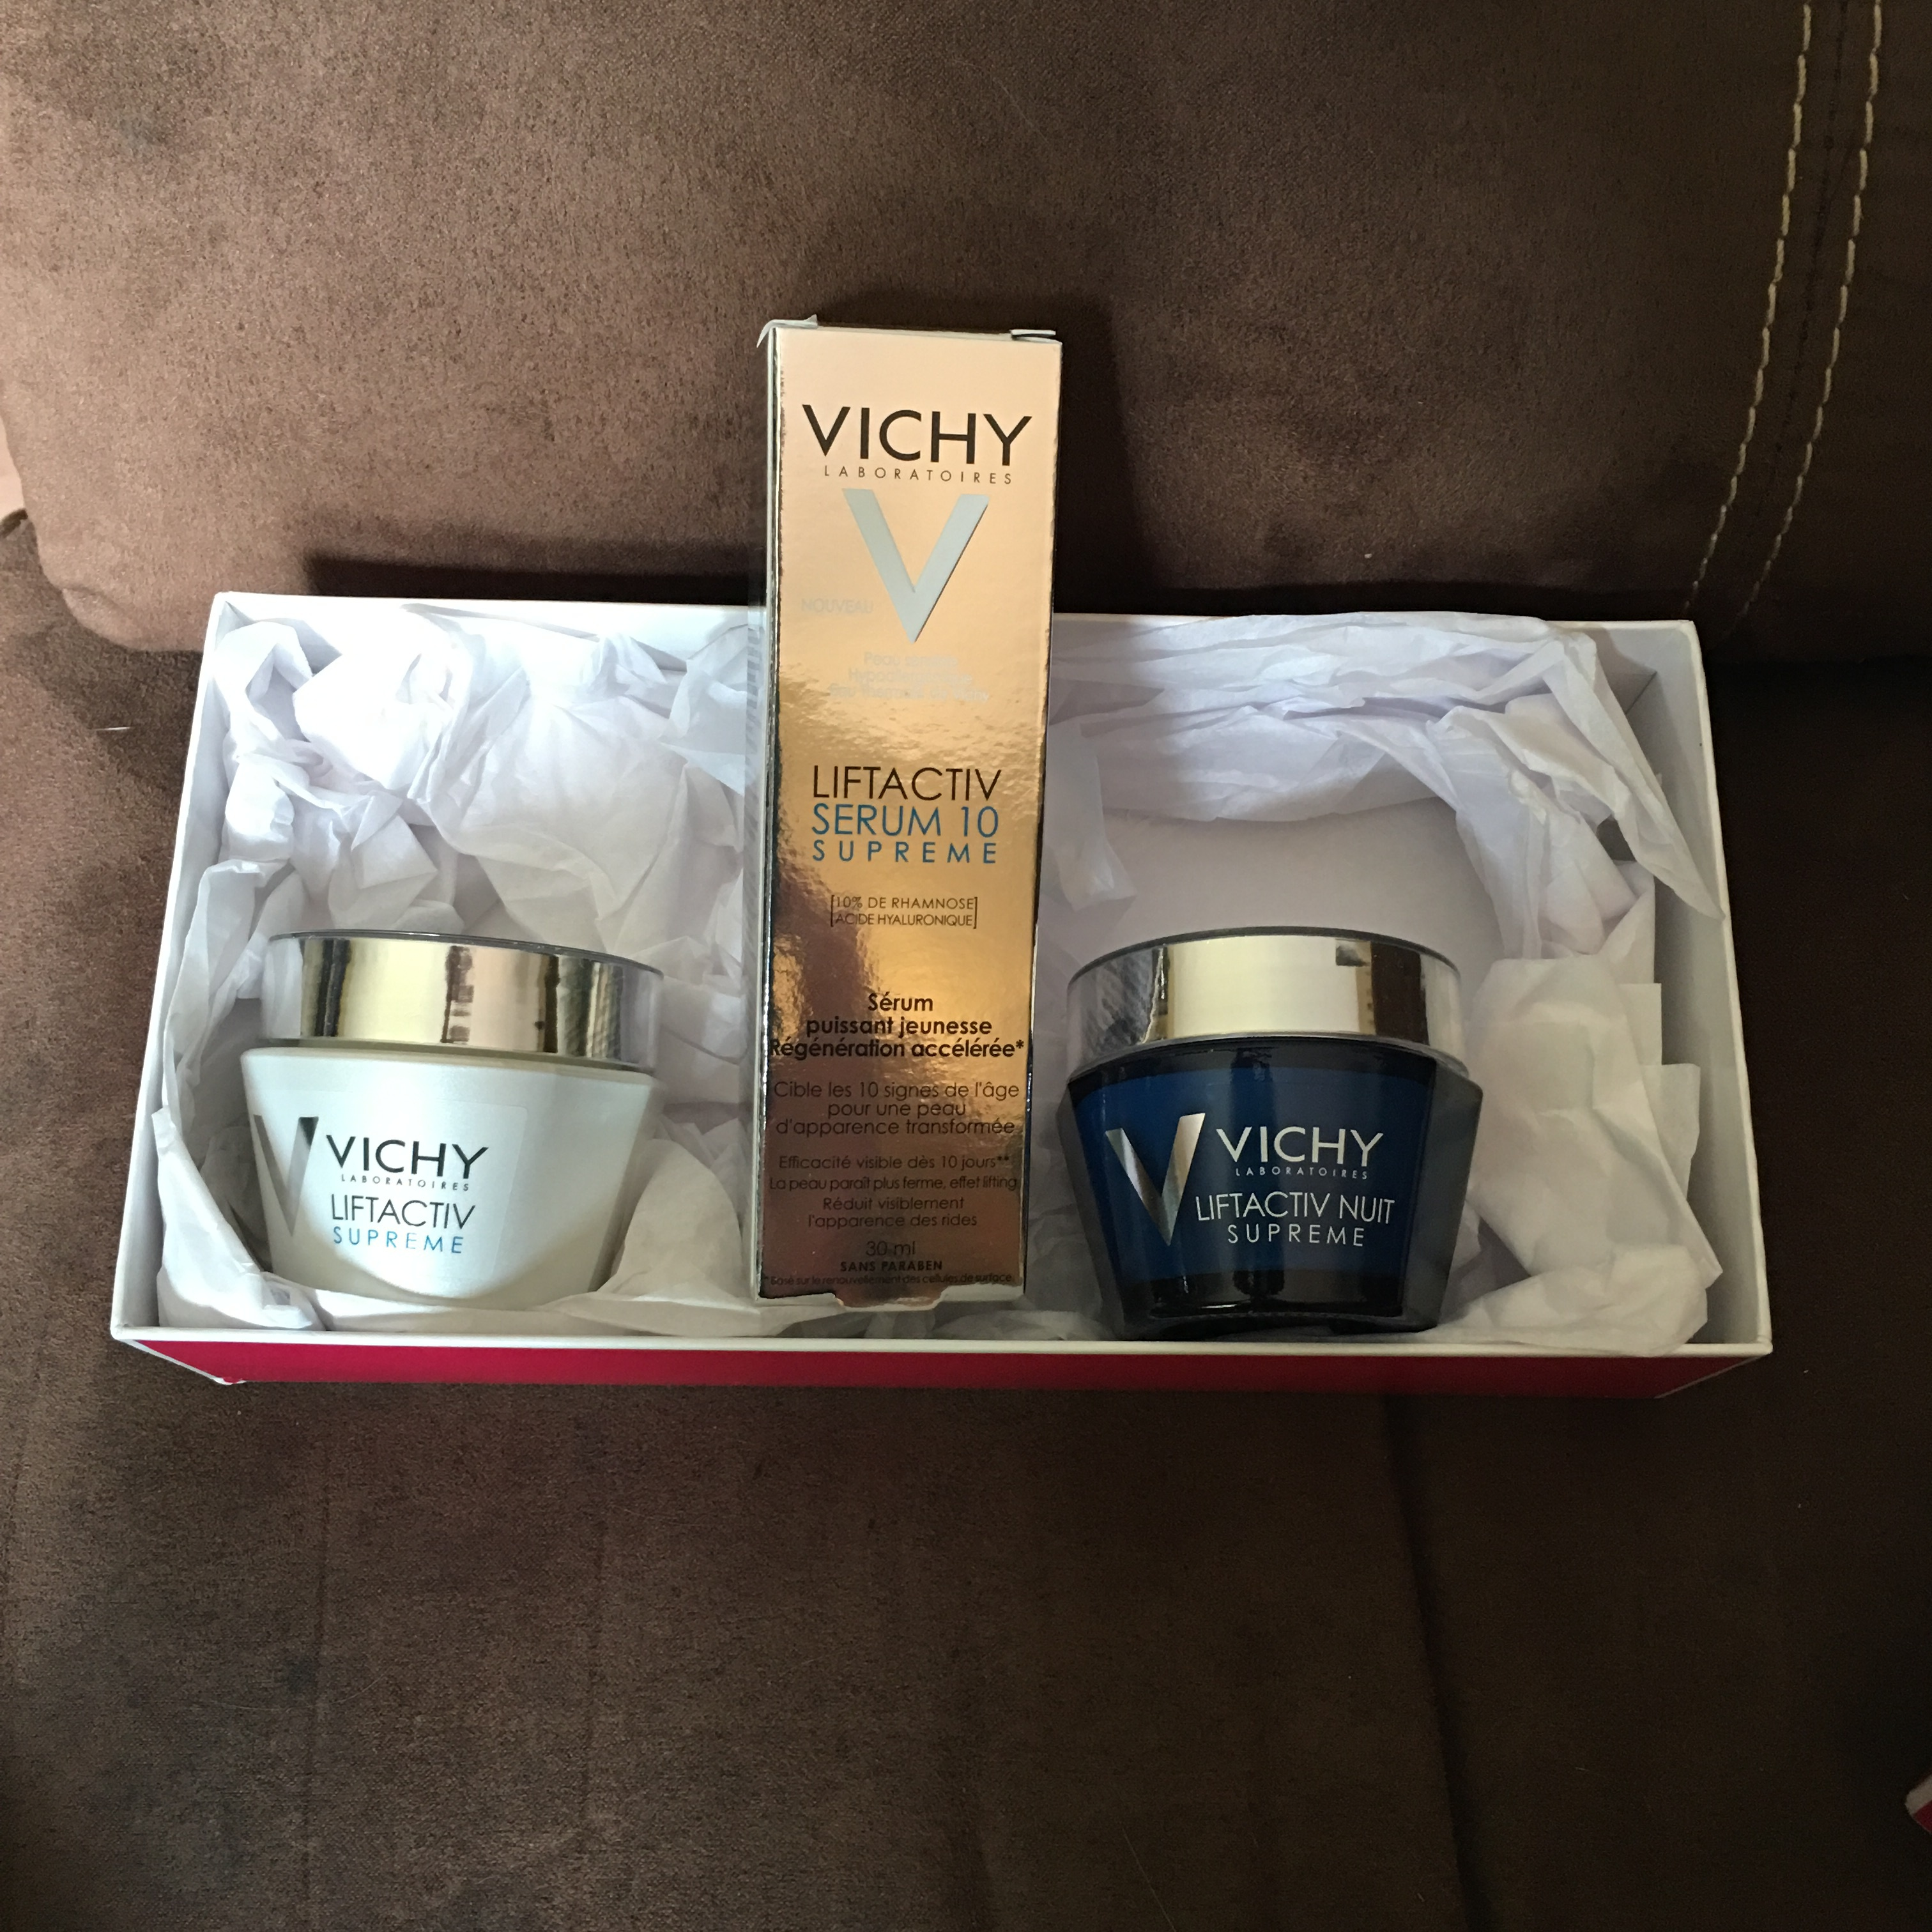 c7a719b6b43 Vichy Liftactiv Supreme Day Cream reviews in Anti-Age/Wrinkle Cream ...